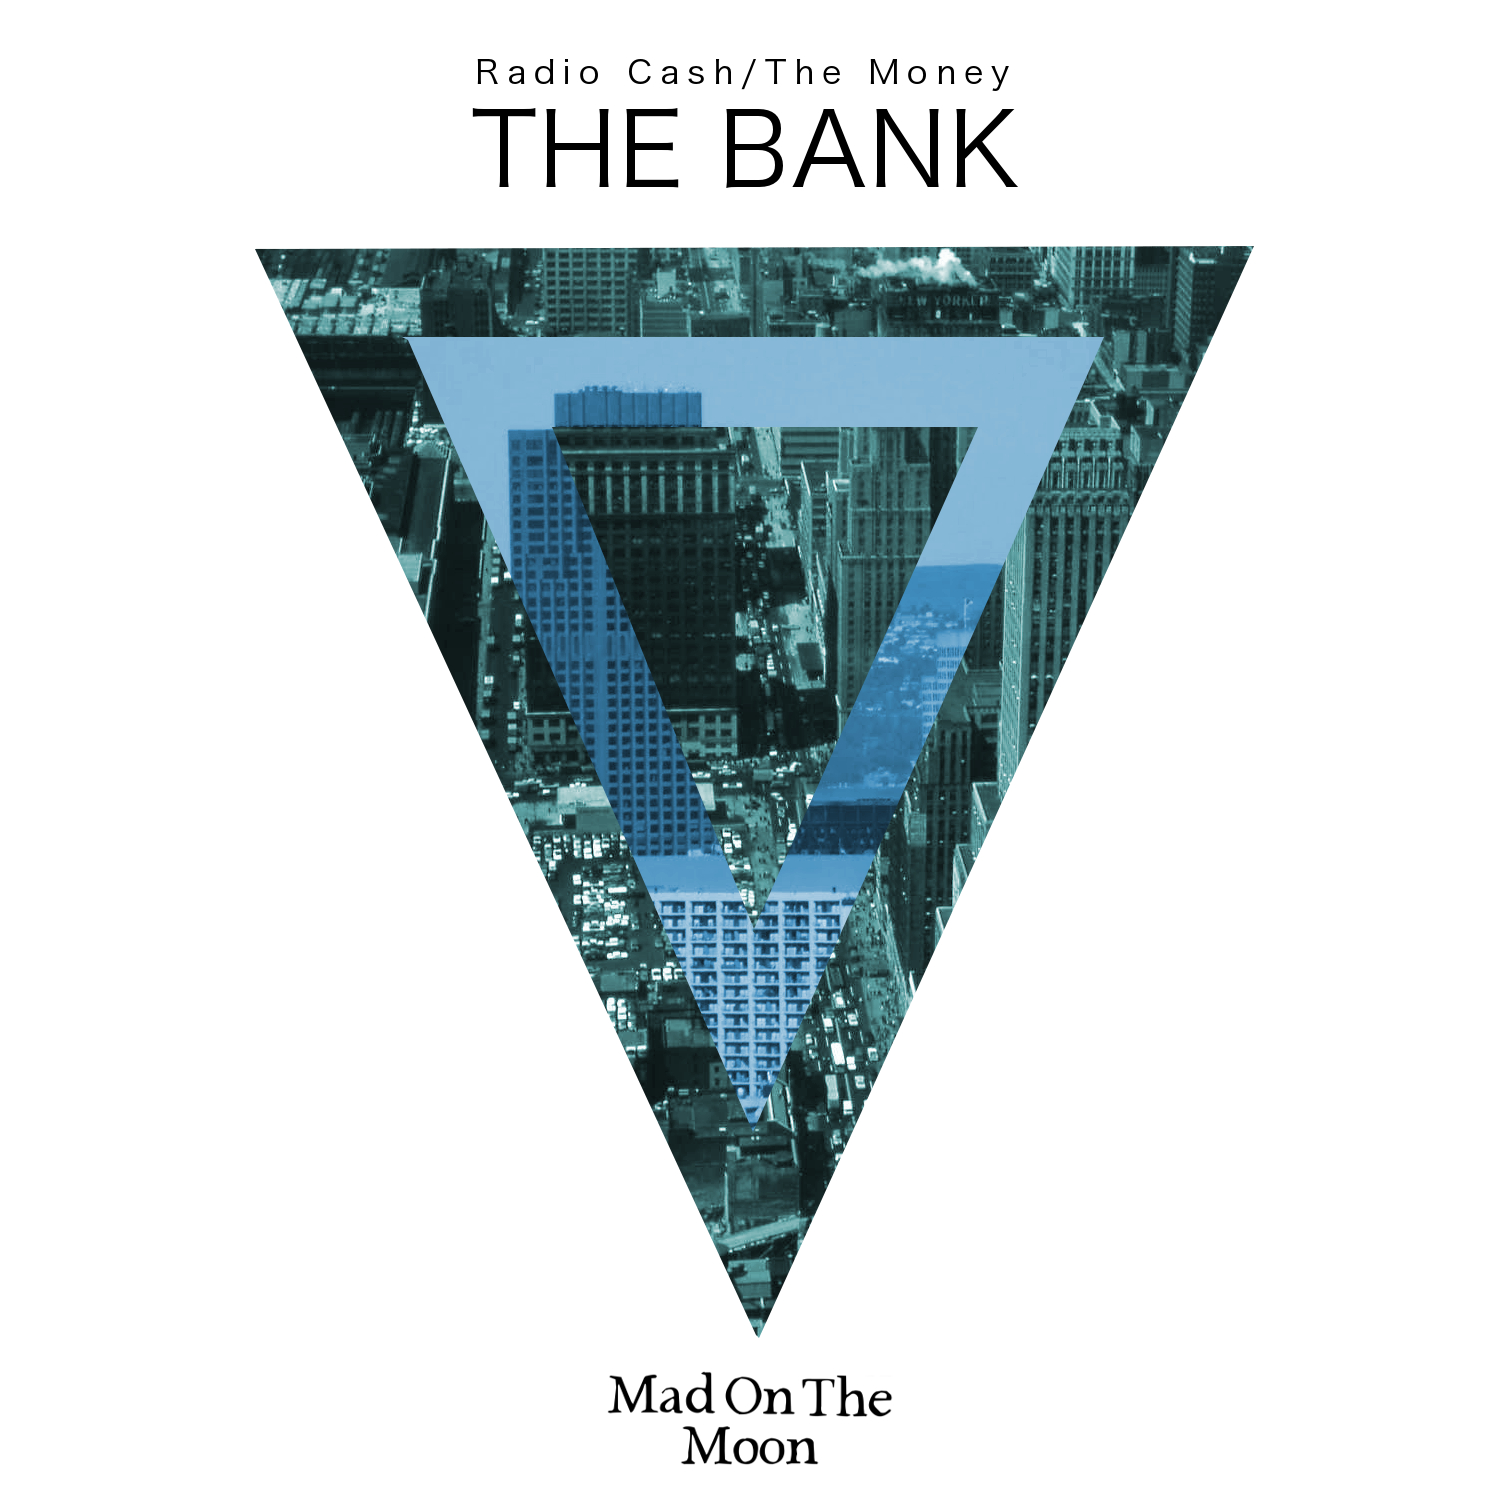 The Bank - Radio Cash / The Money